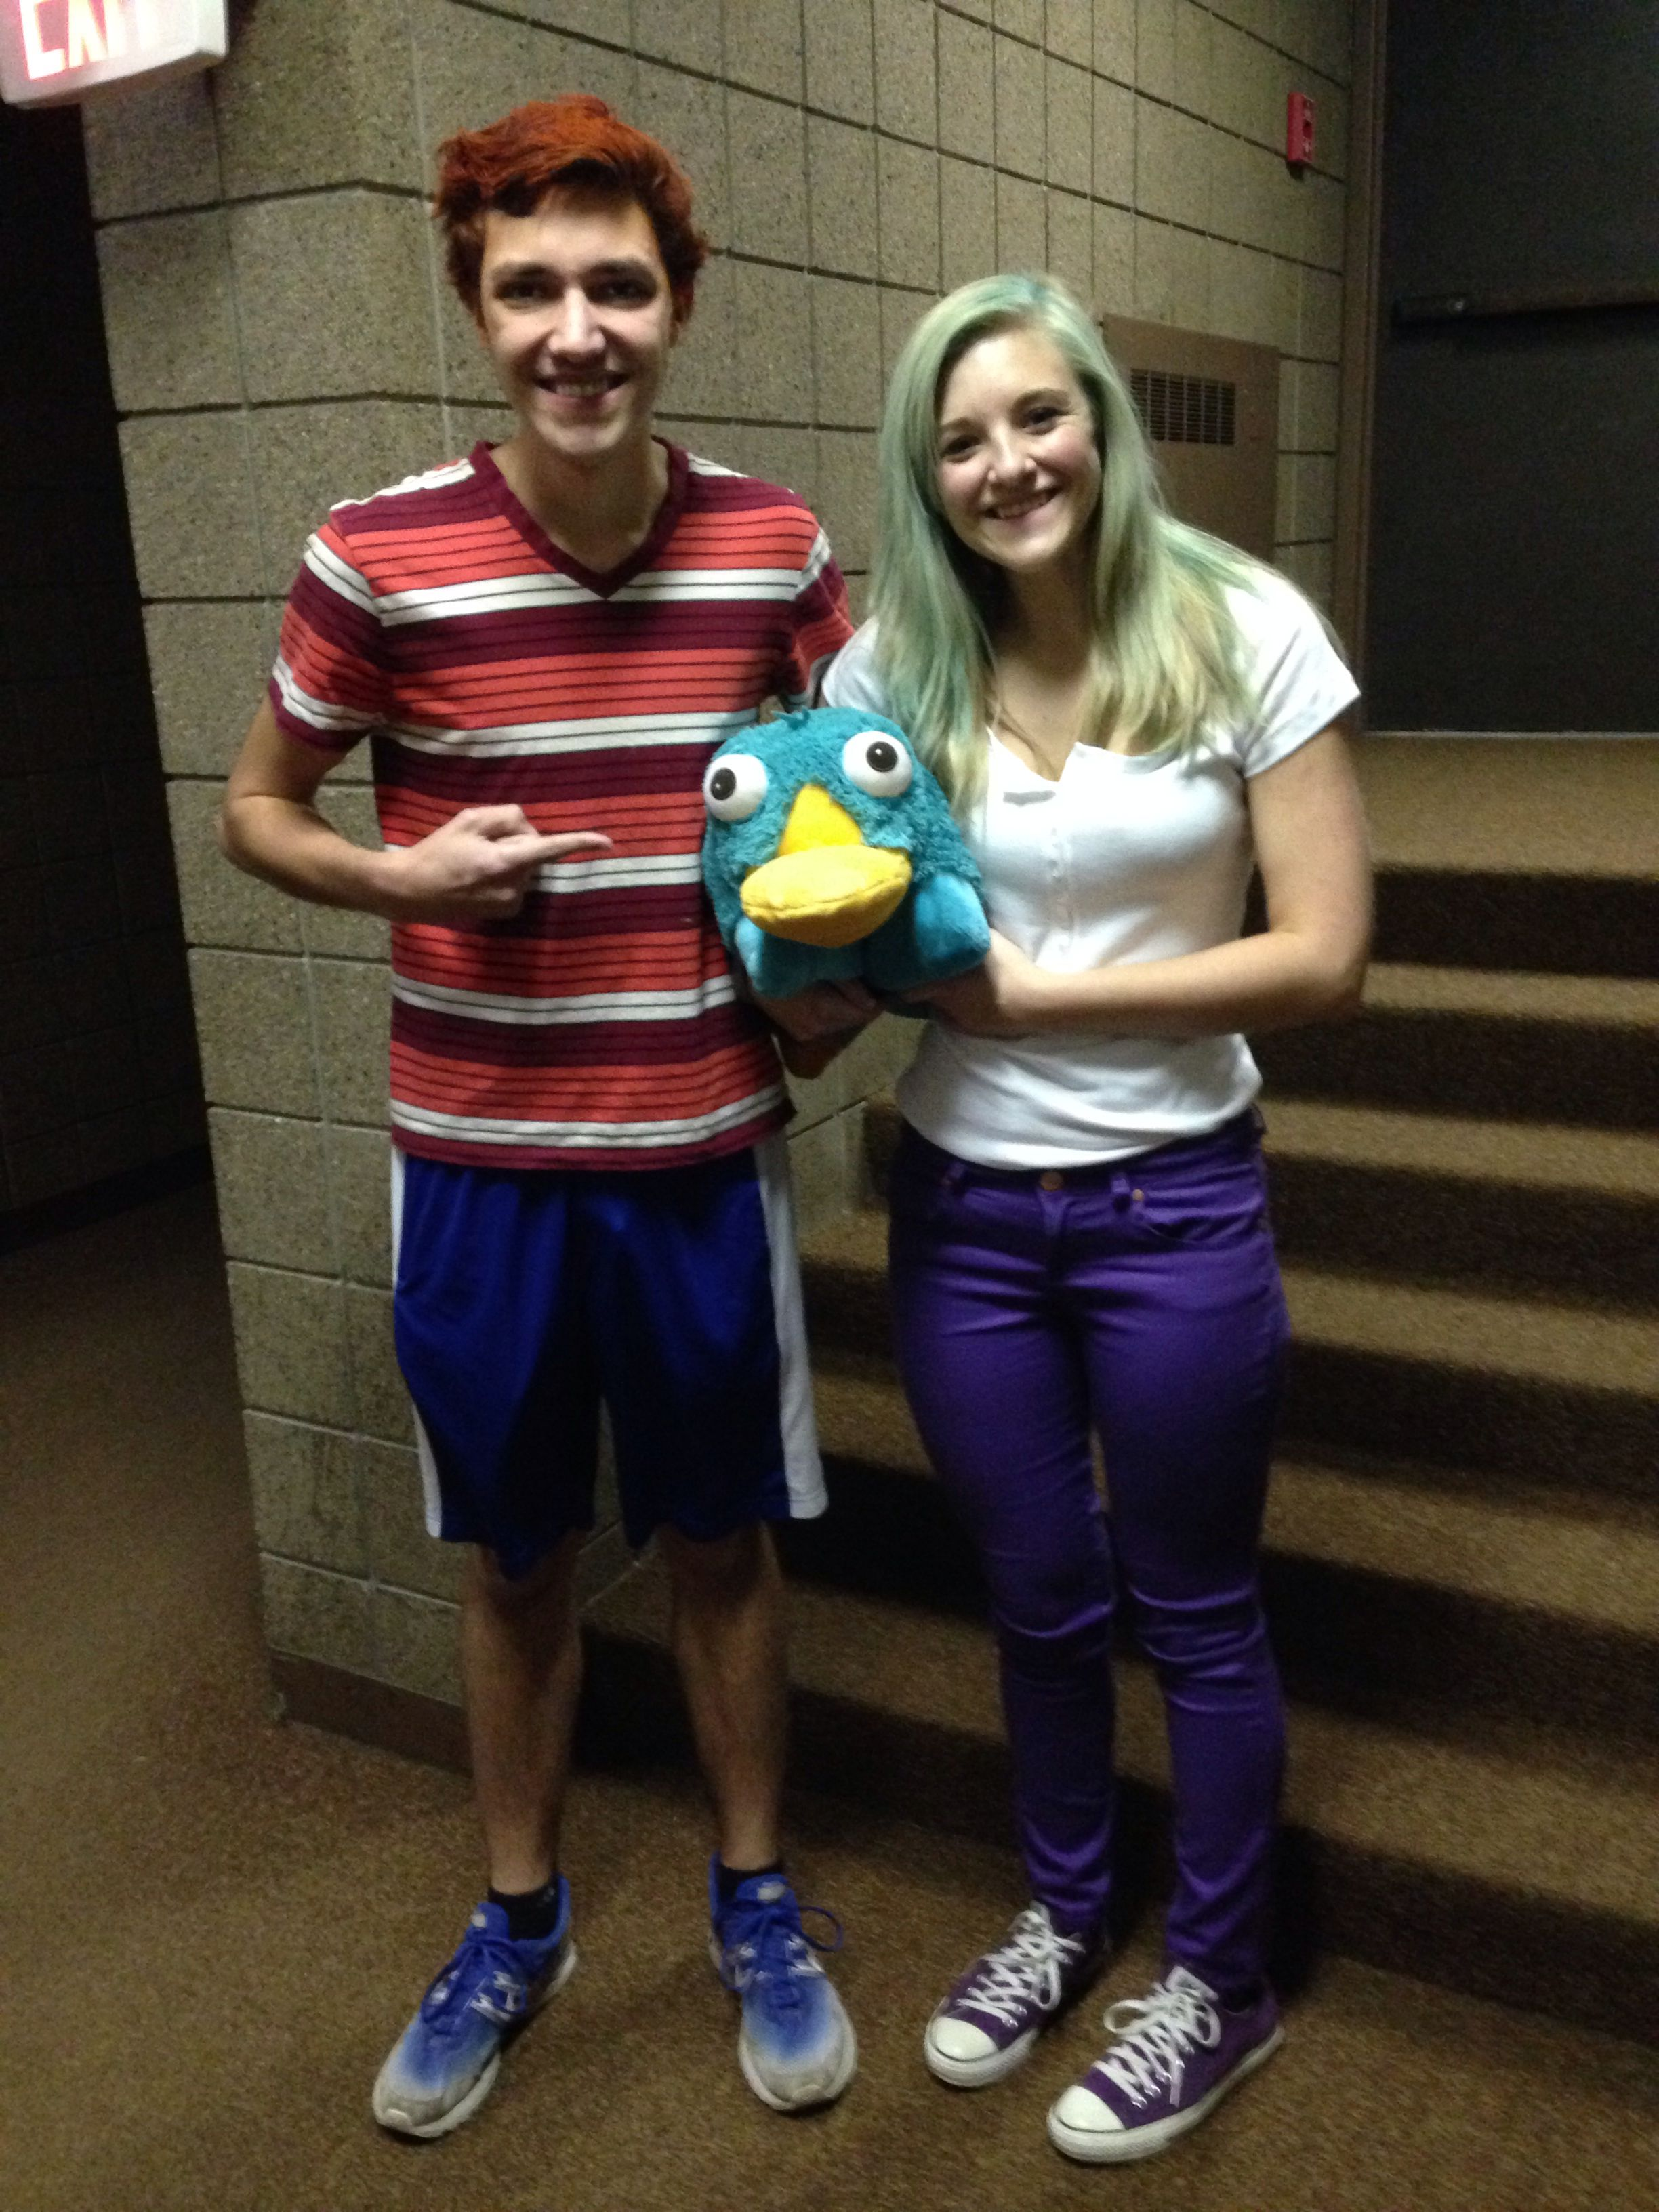 phineas and ferb costumes someone has to do it with me | halloween